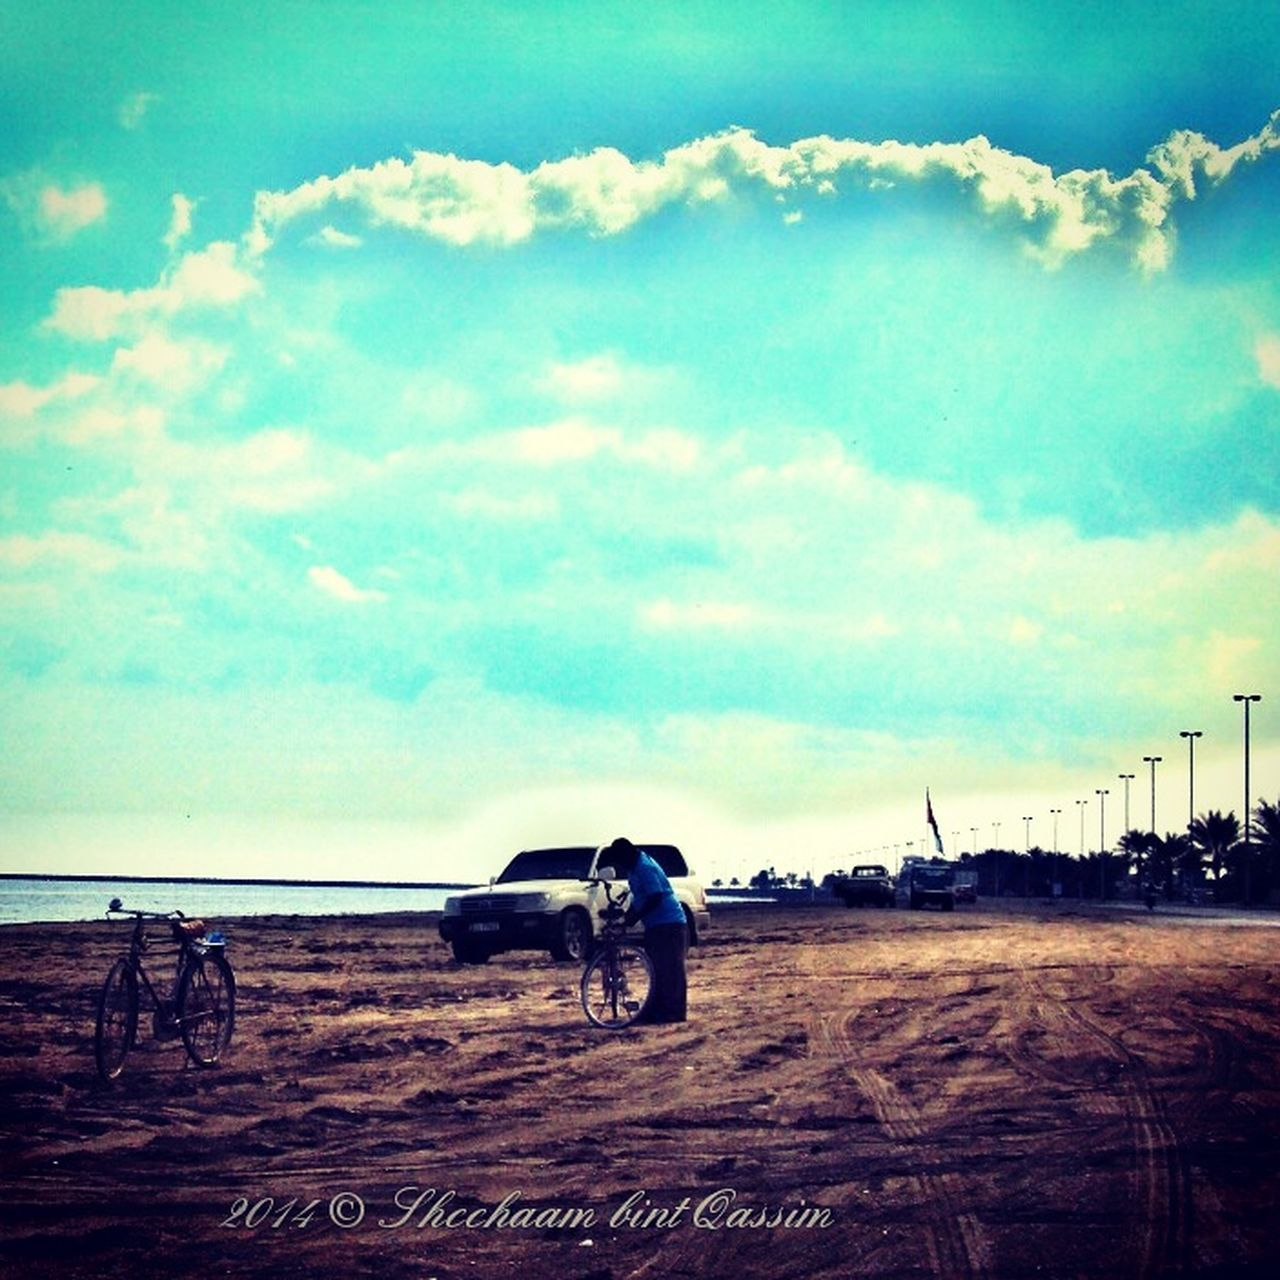 sky, cloud - sky, day, nature, outdoors, beach, beauty in nature, no people